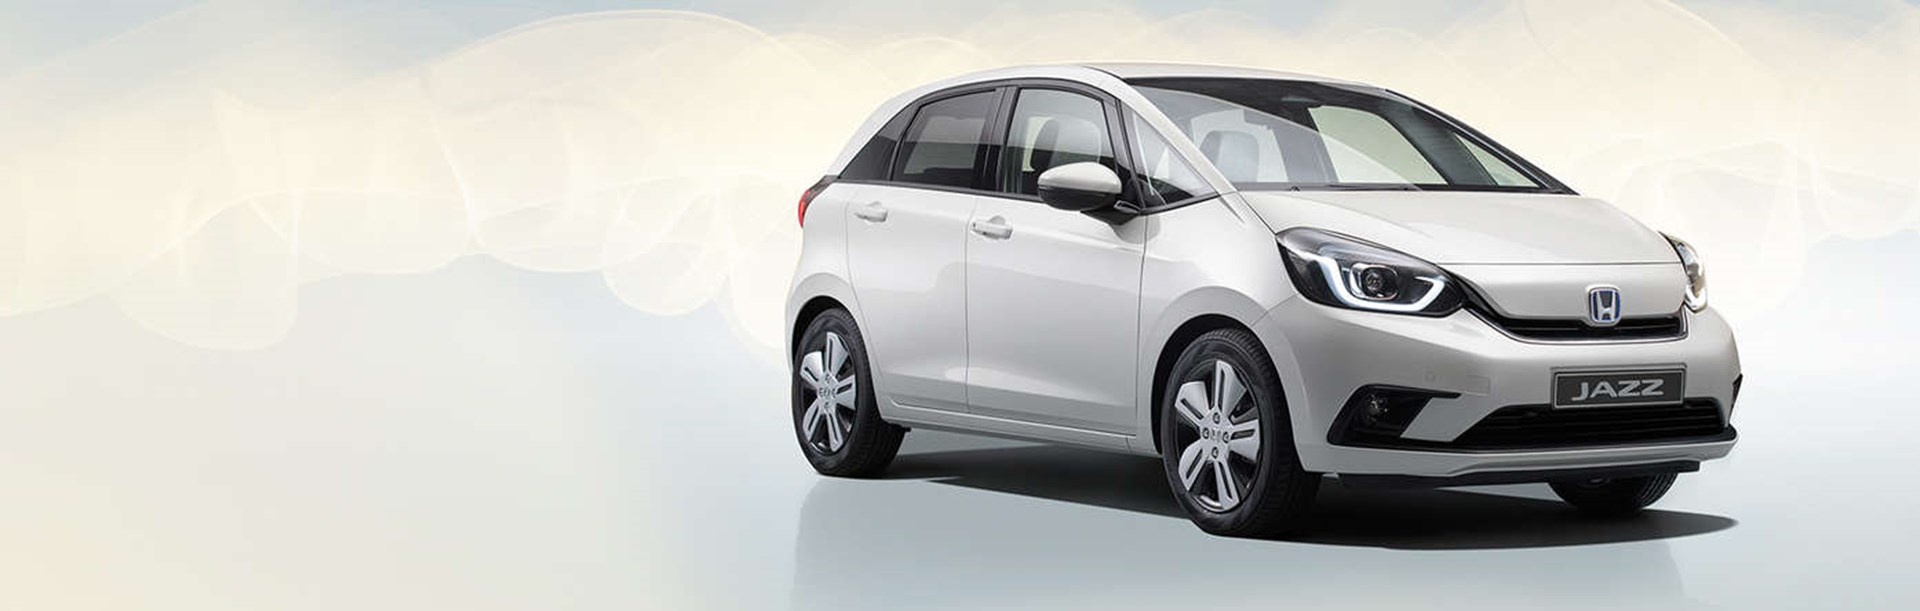 New Honda Jazz e:HEV